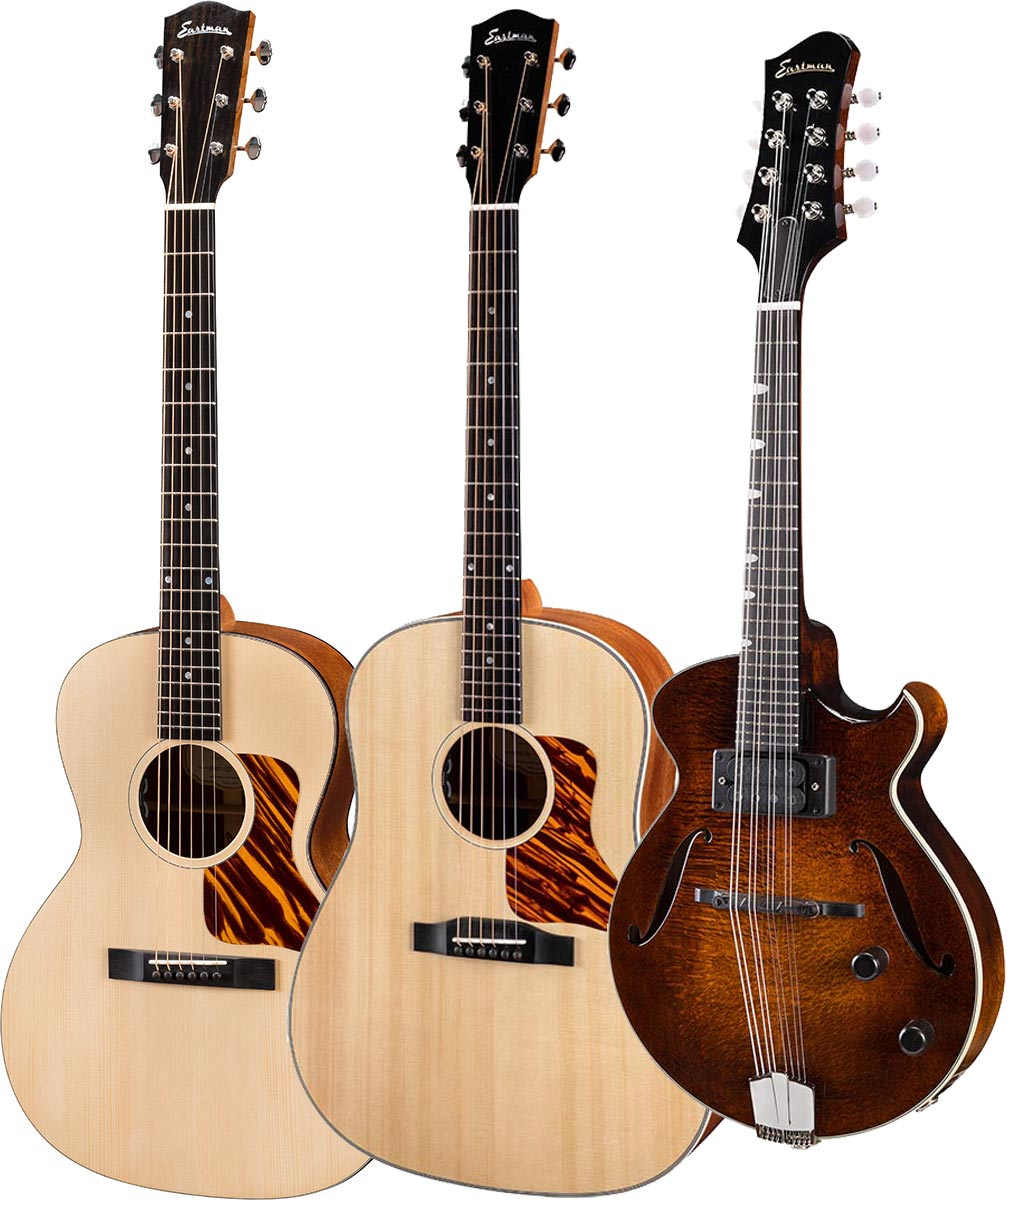 New Eastman Traditional limited  Series and new  El Rey Electric Mandolin